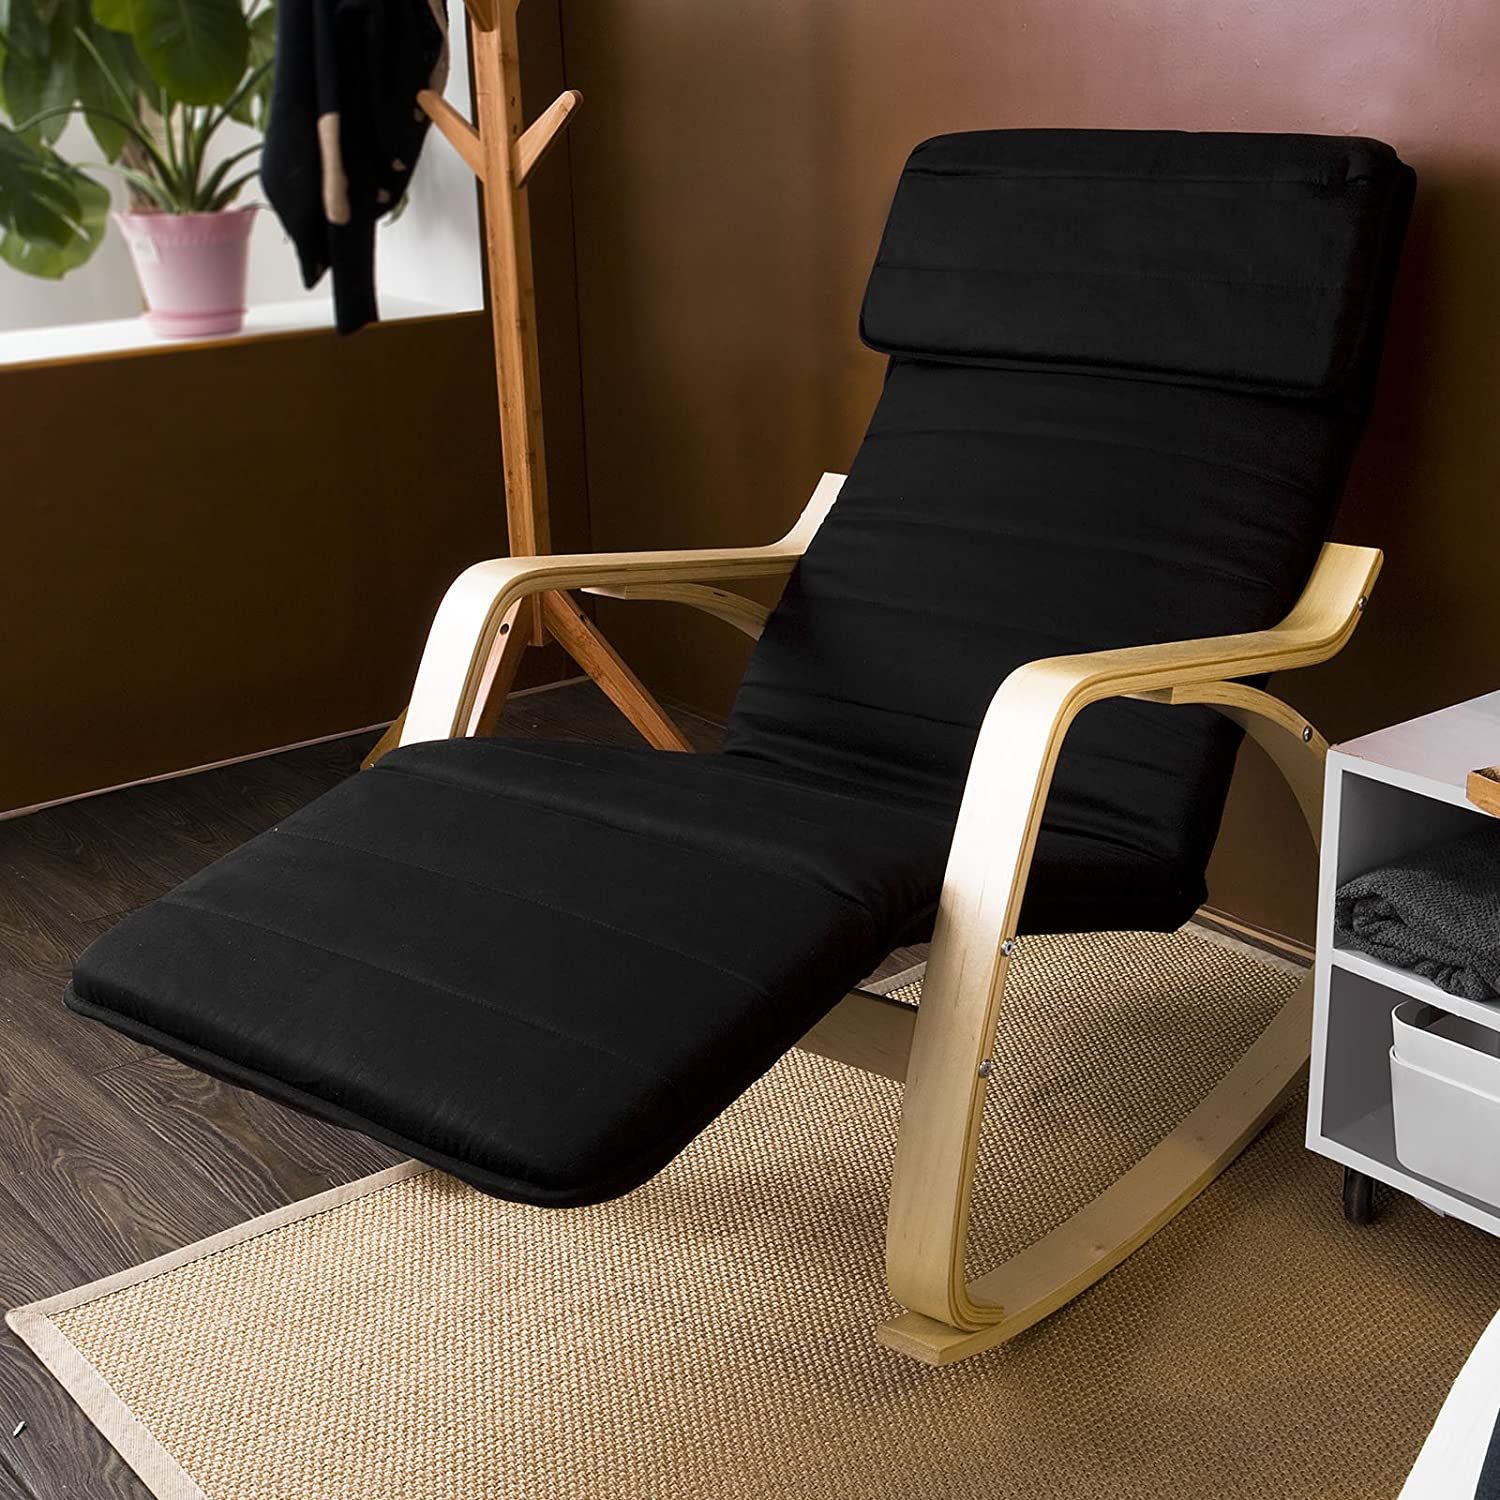 Amazon.com Haotian Comfortable Relax Rocking Chair with Foot Rest Design Lounge Chair Recliners Poly-cotton Fabric Cushion FST16 (black) Kitchen u0026 ... & Amazon.com: Haotian Comfortable Relax Rocking Chair with Foot Rest ... islam-shia.org